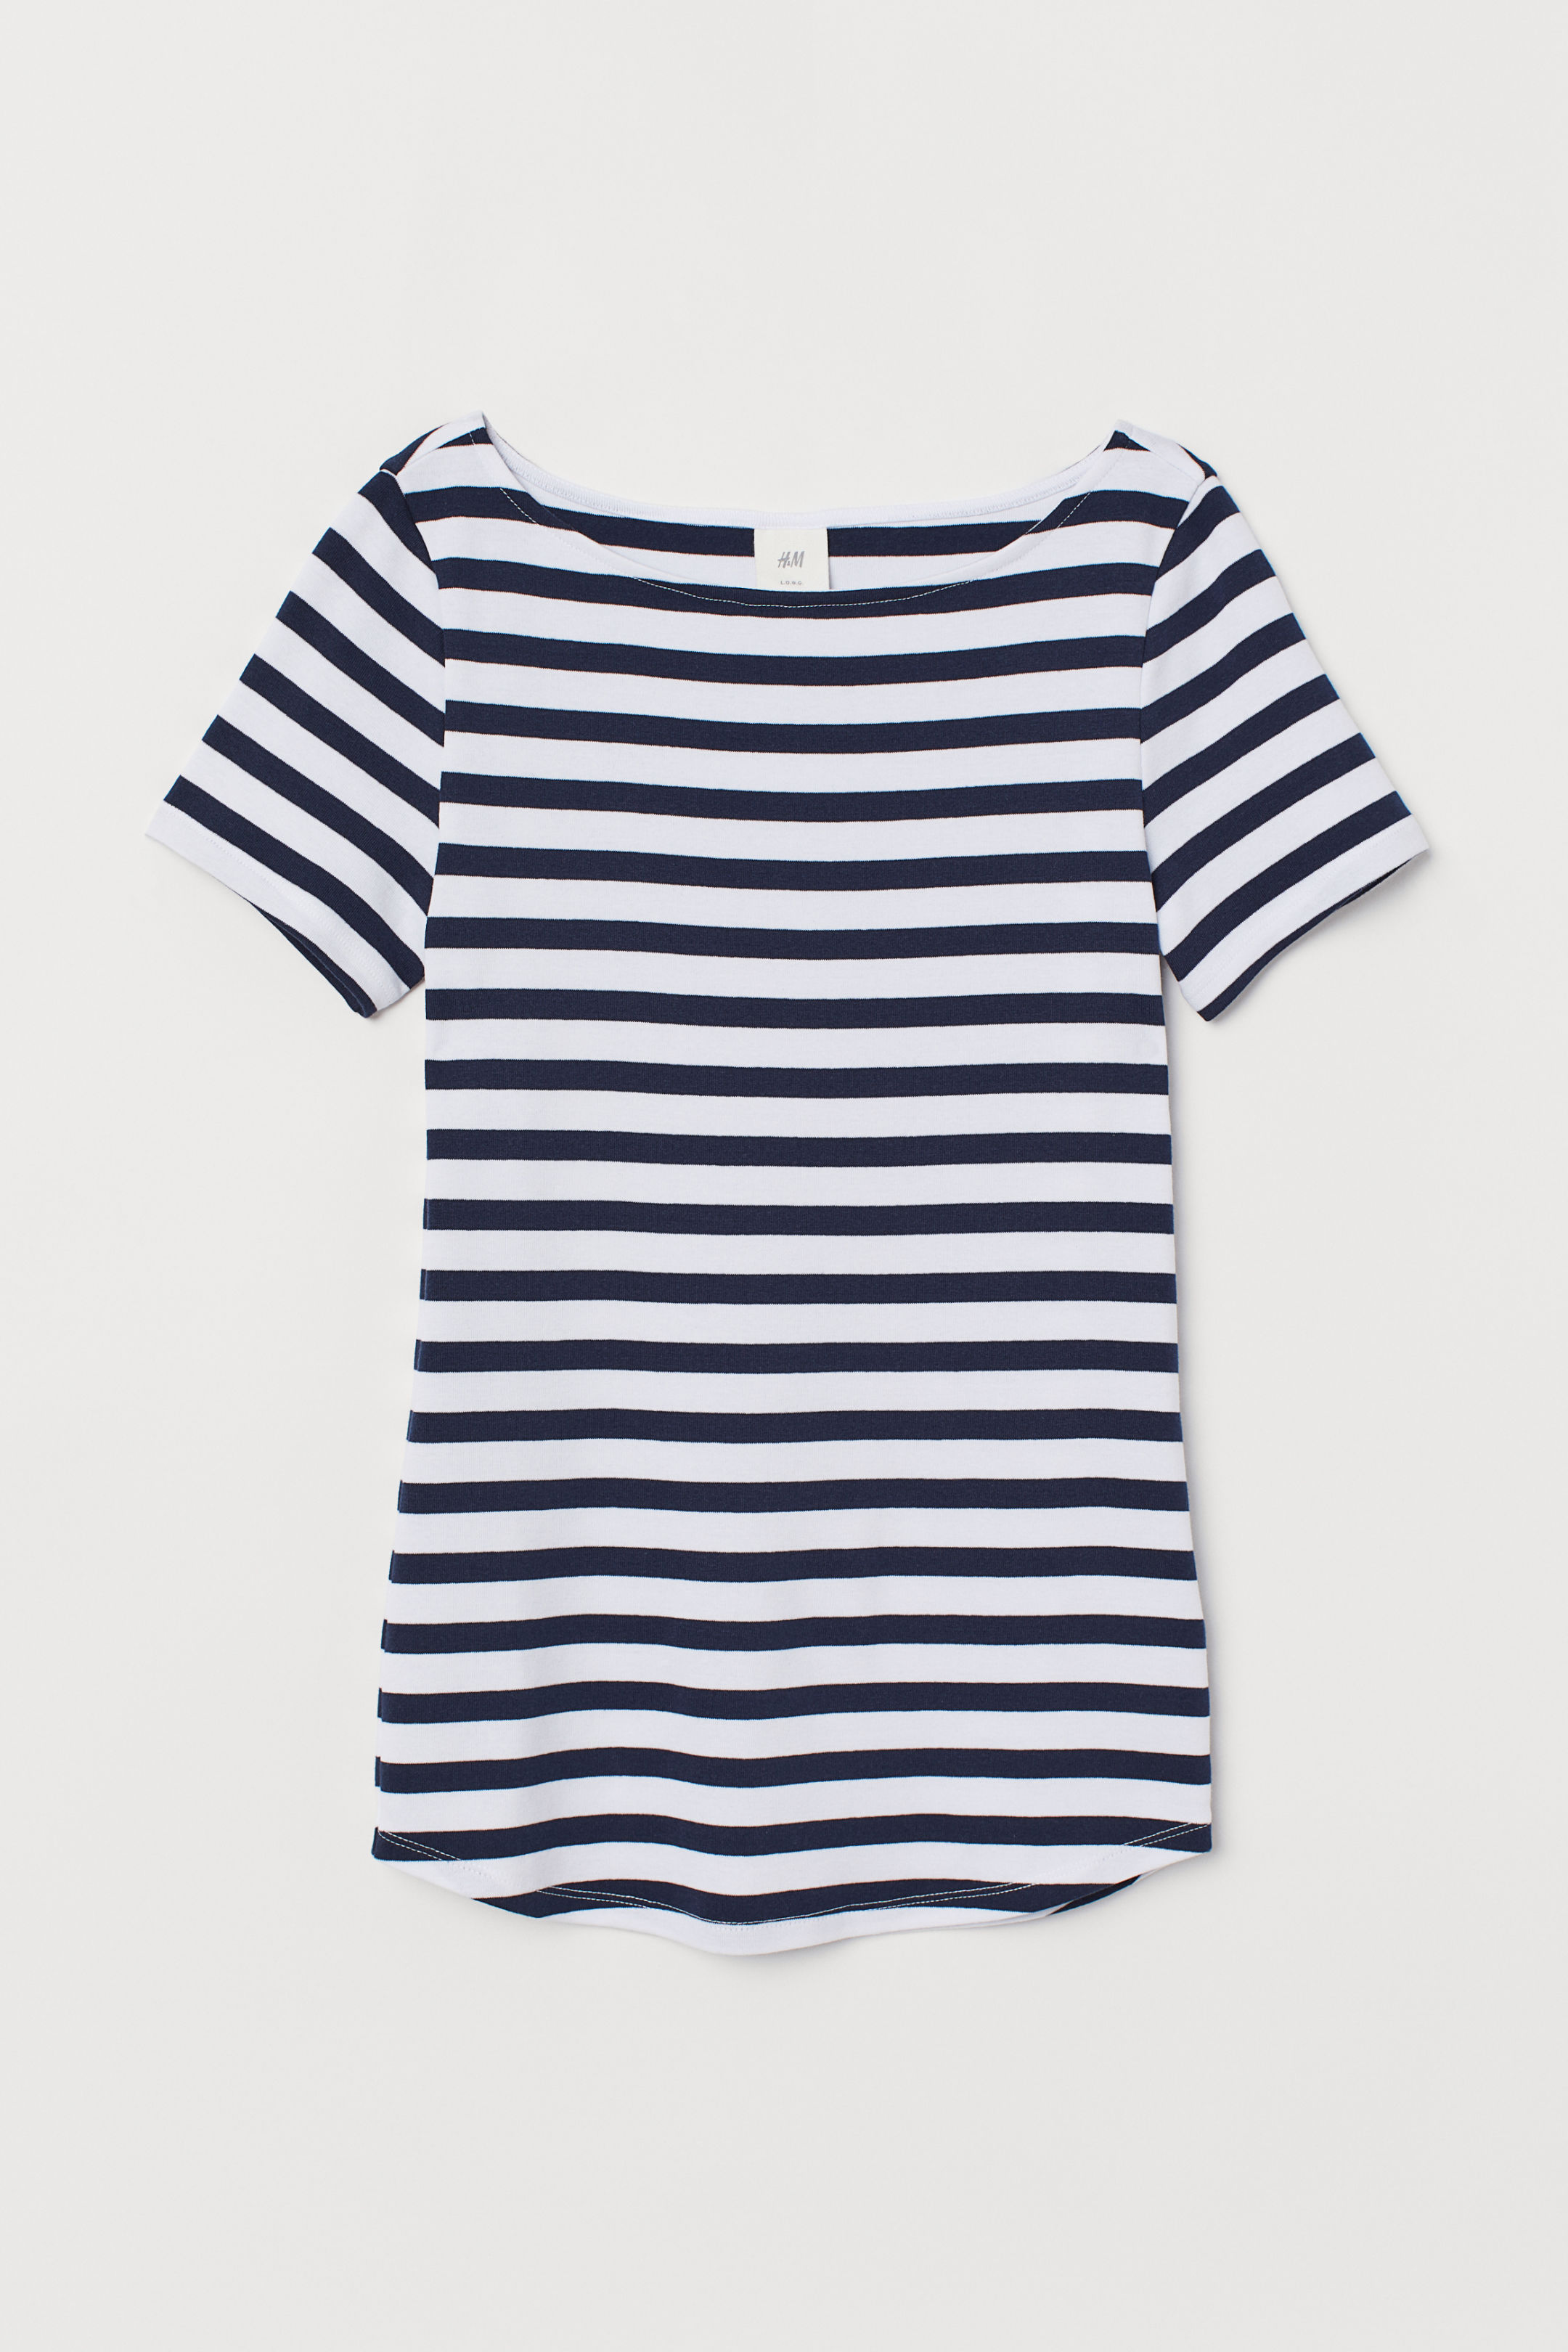 H&M boat neck tee £8.99